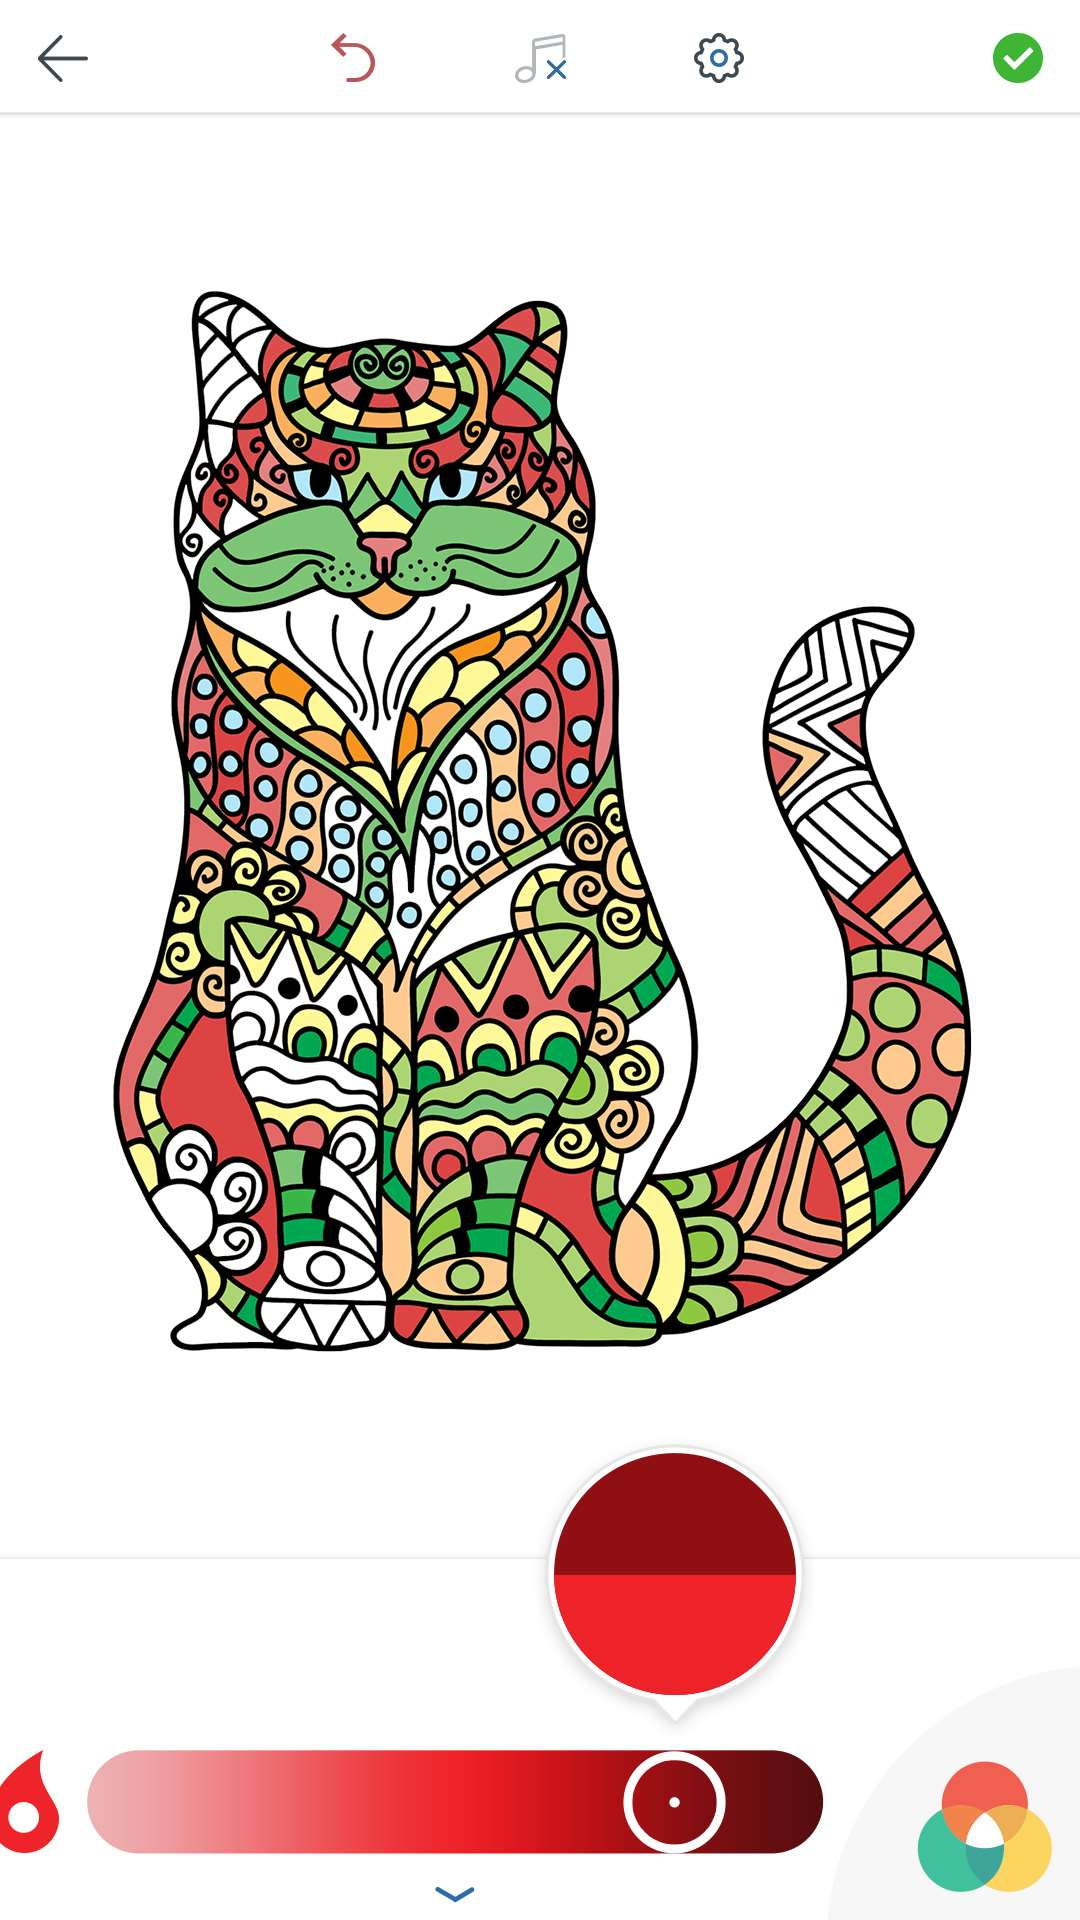 Cat coloring pages for adults free for android ios and Coloring book for adults android